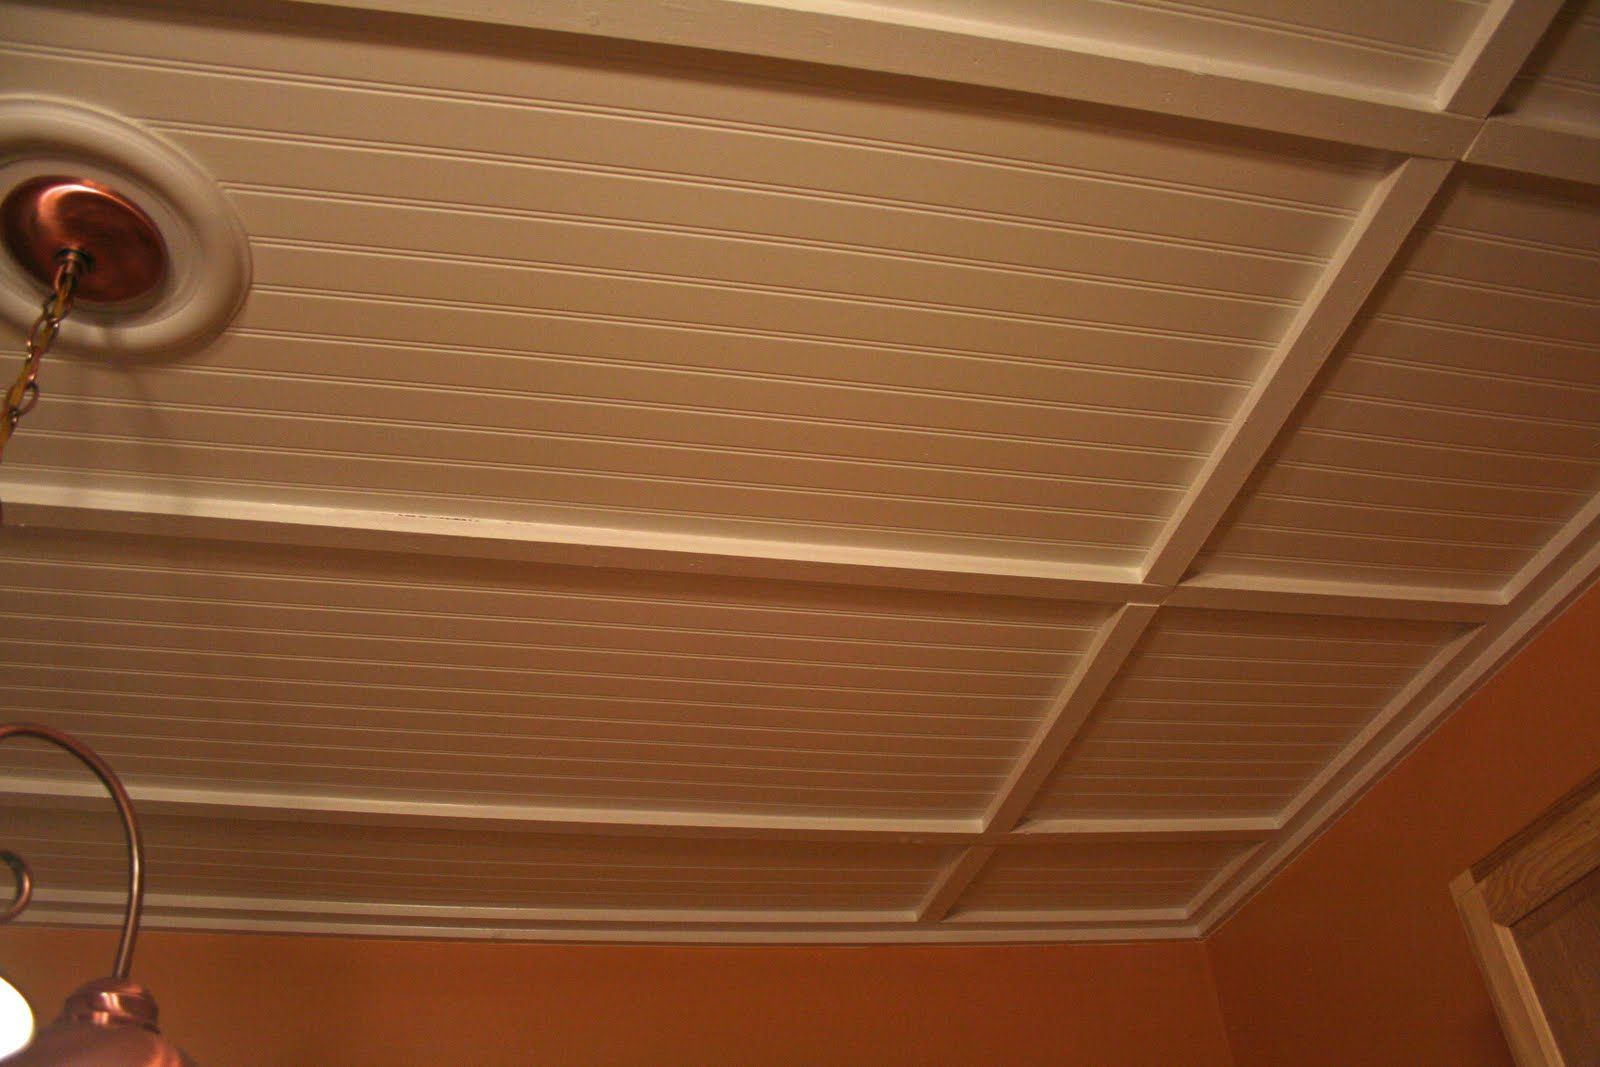 Painted Beadboard With X Boards To Disguise Ugly Drop Ceiling - 1 x 2 ceiling tiles